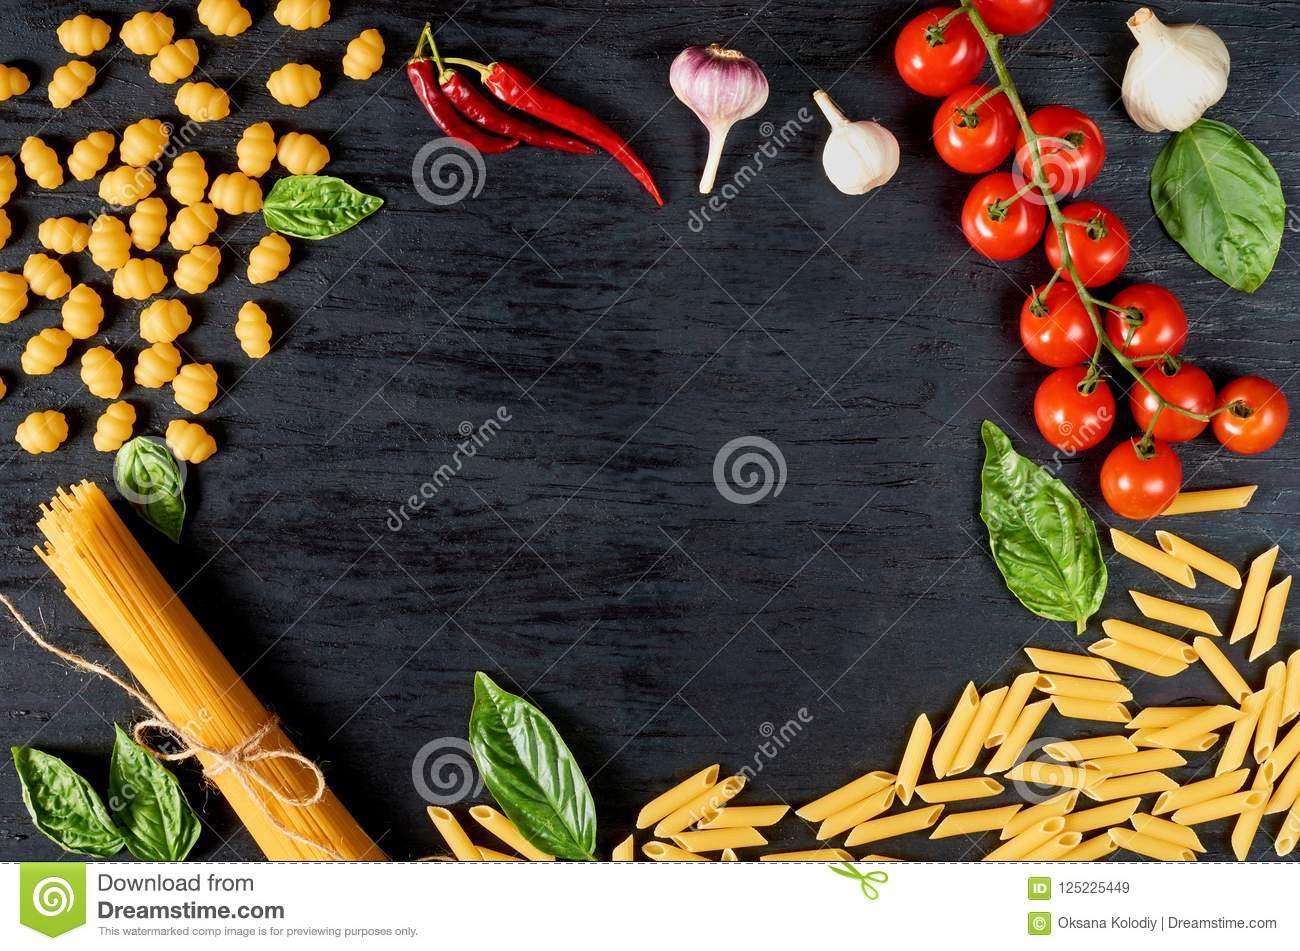 Frame of Italian traditional food, spices and ingredients for cooking as basil, cherry tomatoes, chili pepper, garlic and pasta